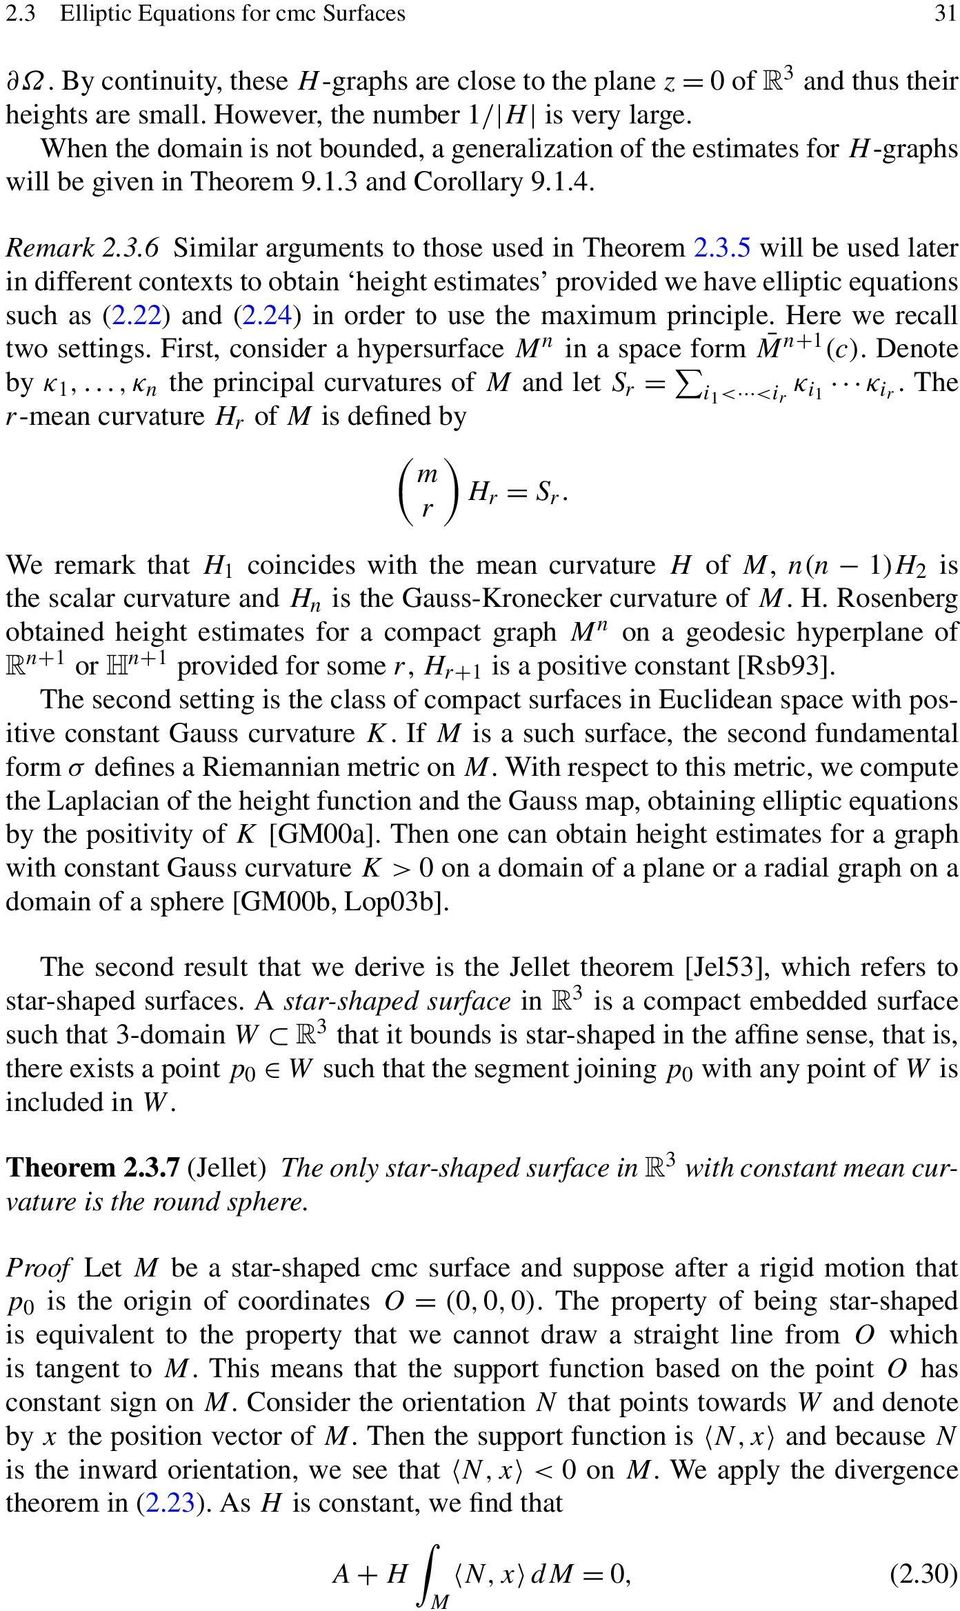 and Corollary 9.1.4. Remark 2.3.6 Similar arguments to those used in Theorem 2.3.5 will be used later in different contexts to obtain height estimates provided we have elliptic equations such as (2.